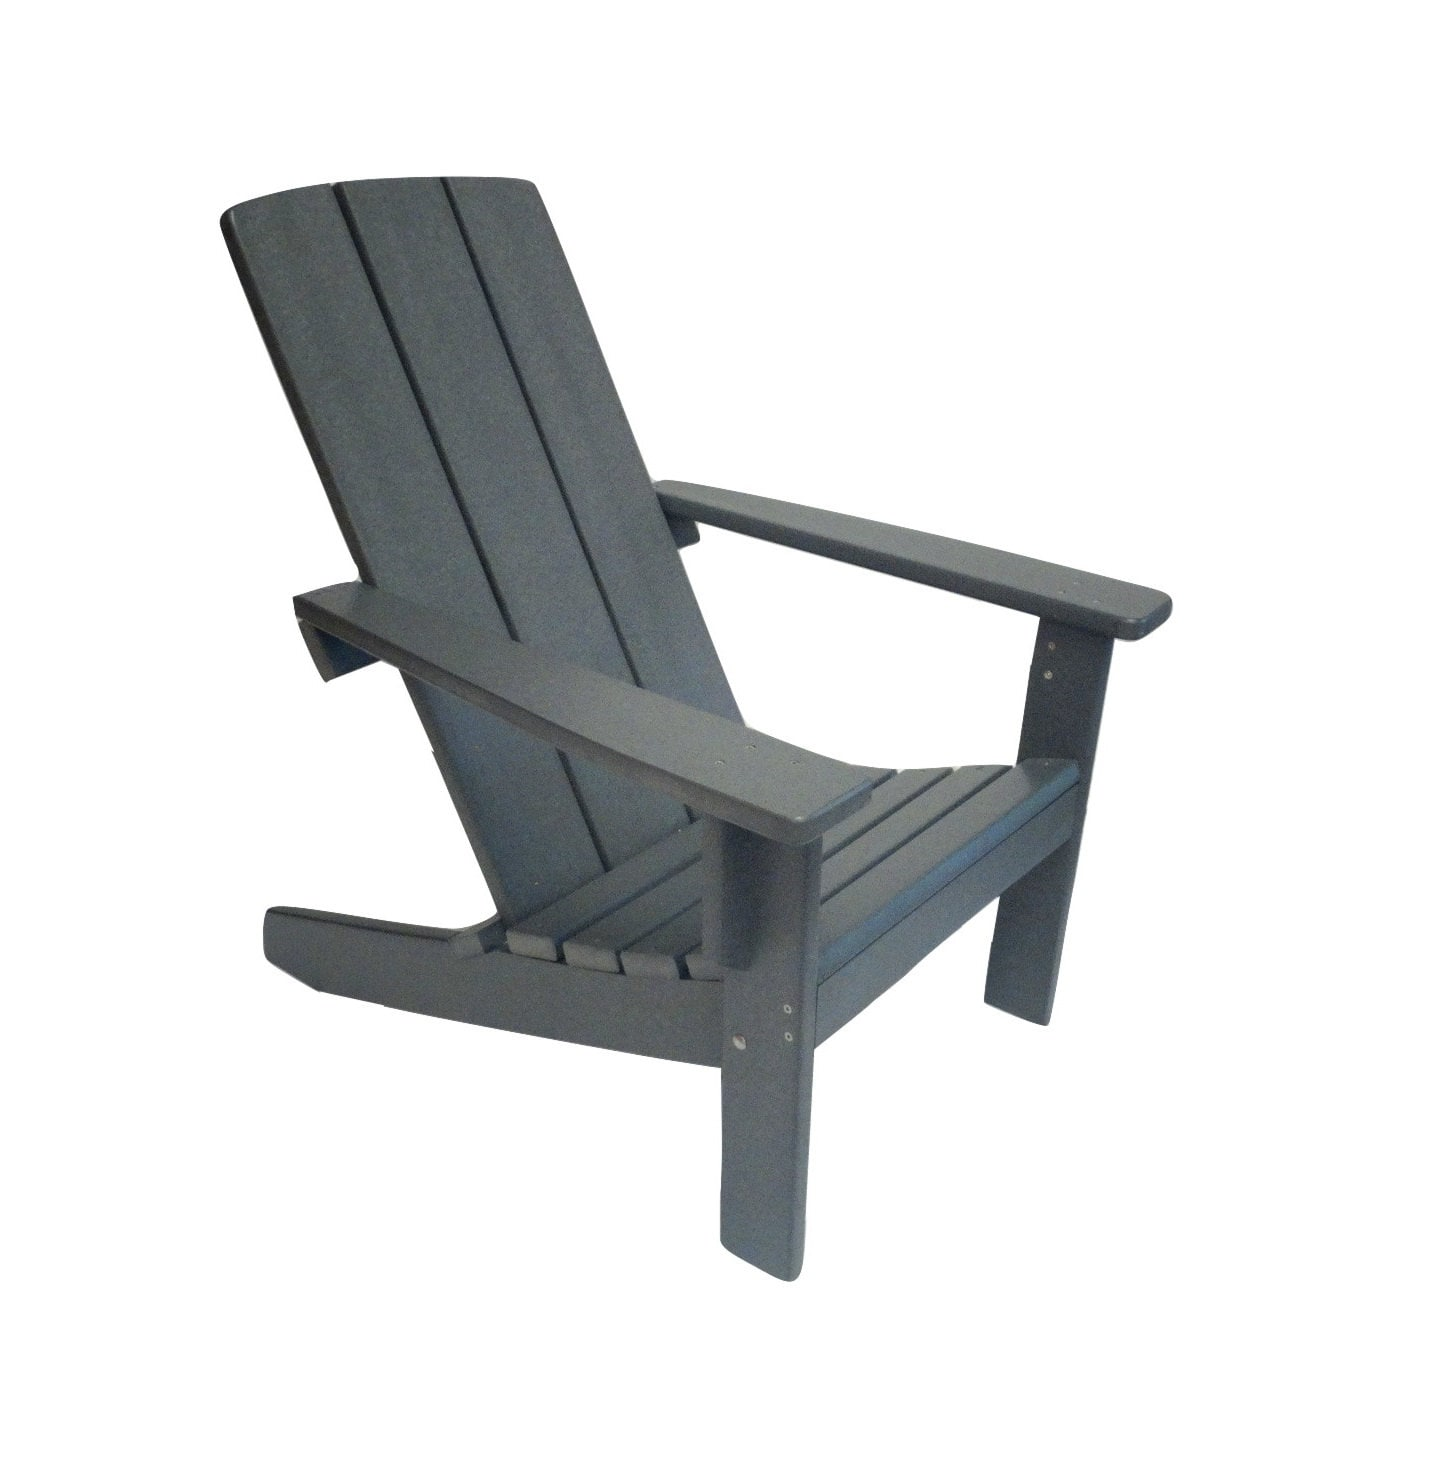 Adirondack Chair Modern Style Made from Poly Wood.